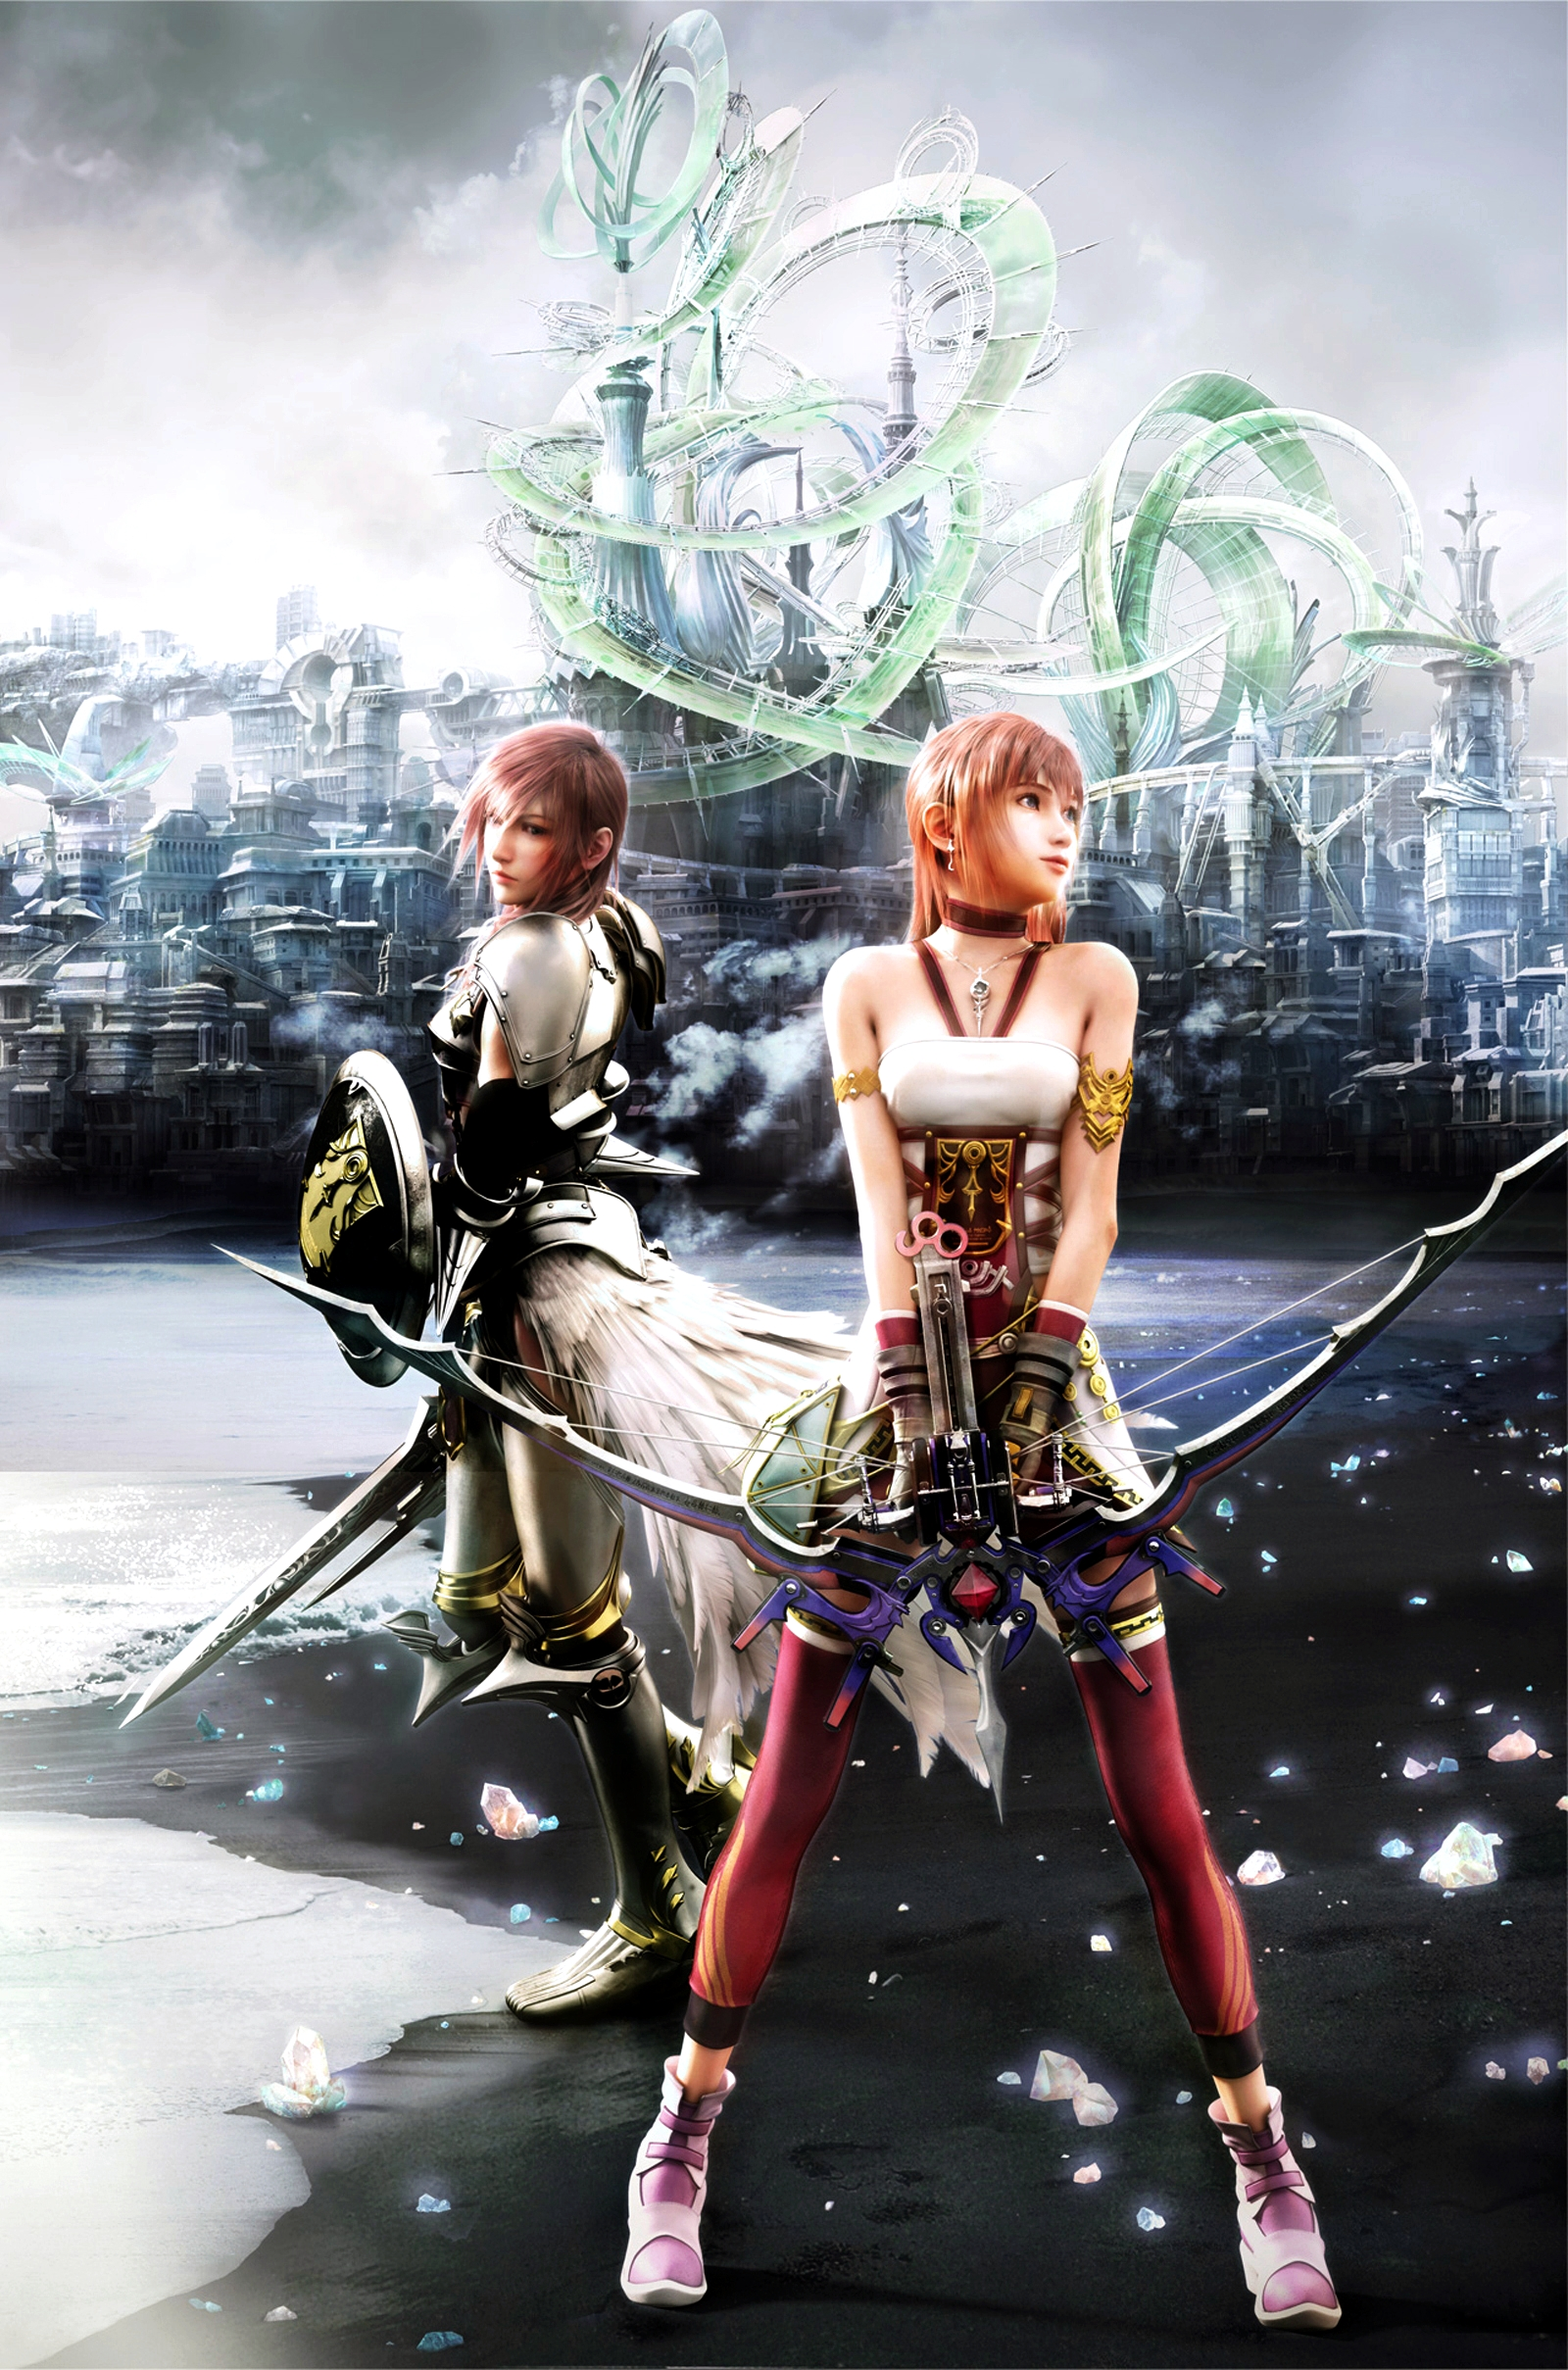 story of final fantasy xiii 2 final fantasy wiki fandom powered